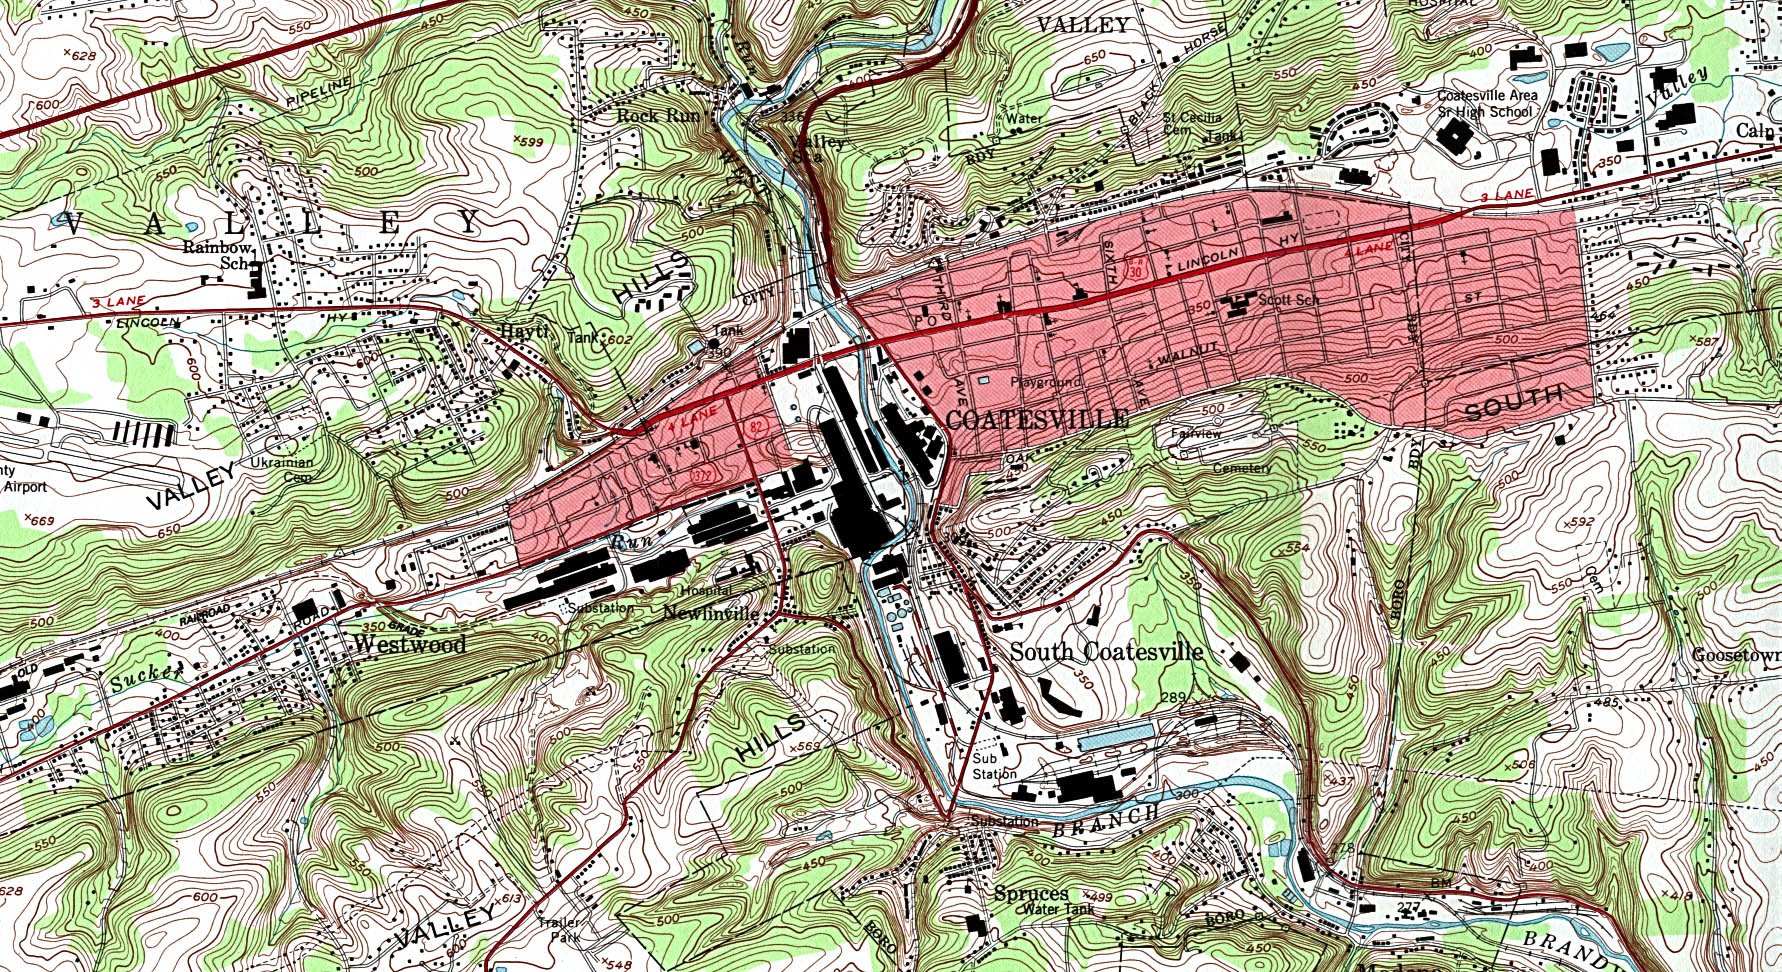 Coatesville Topographic City Map, Pennsylvania, United States